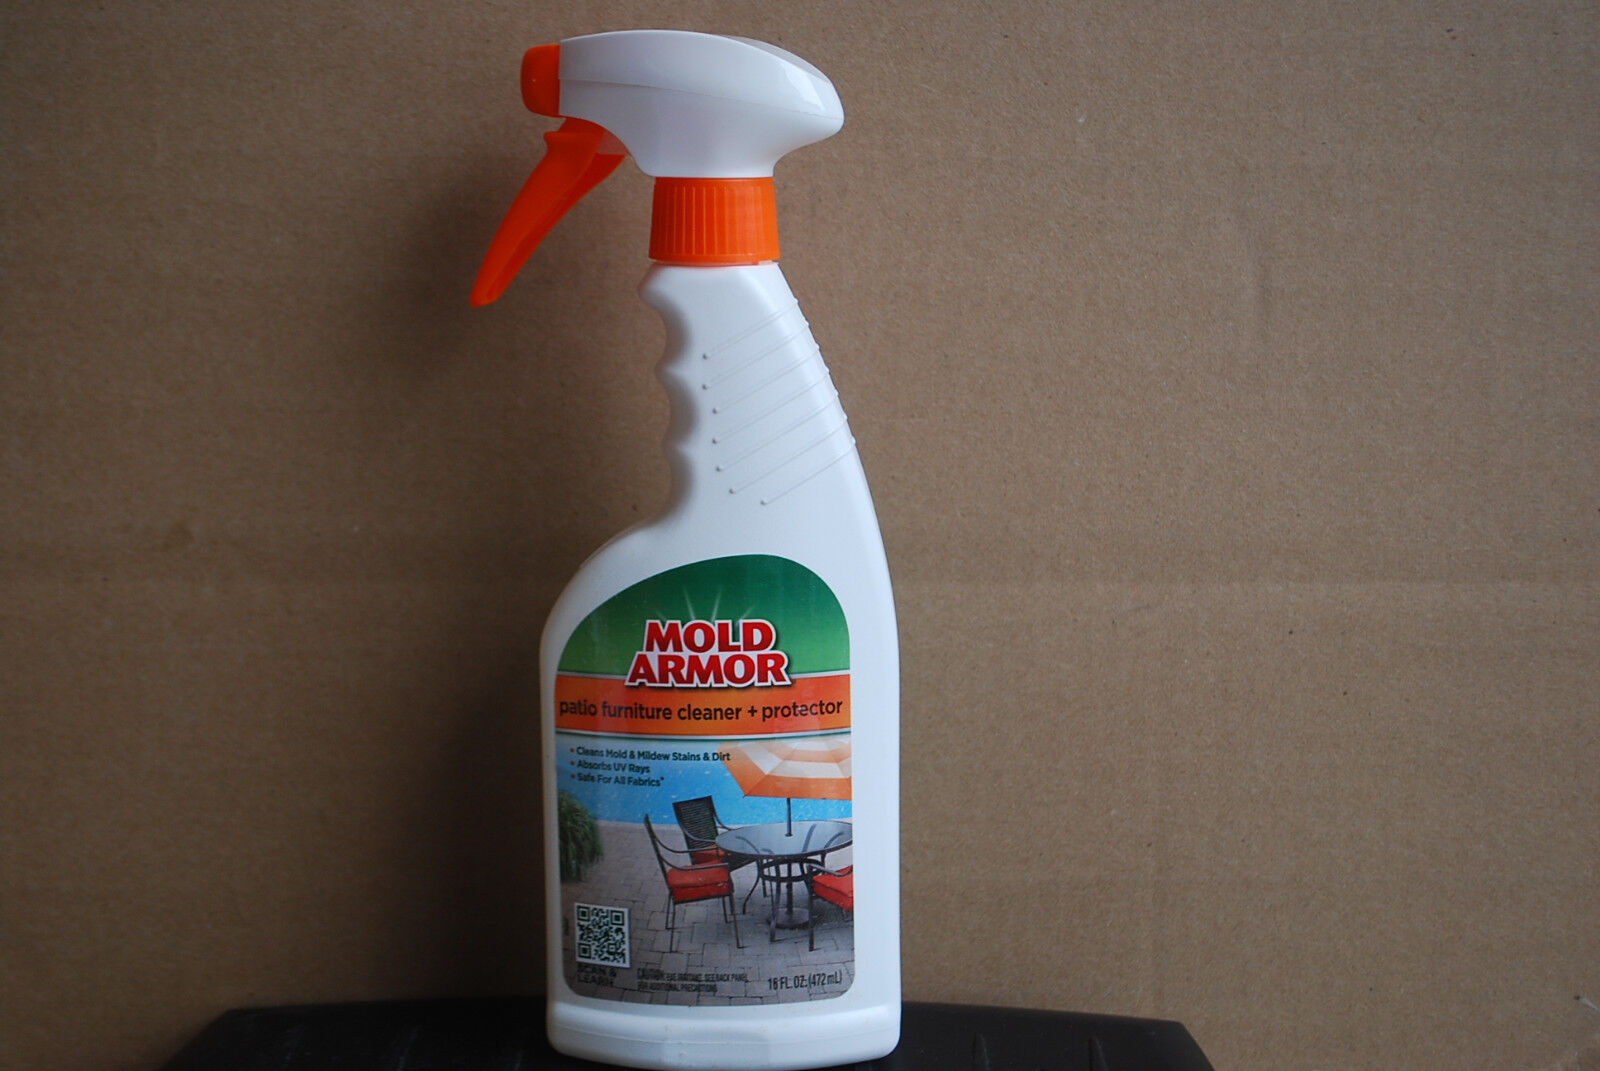 mold armor fg530 patio furniture cleaner and protector trigger spray 16 oz